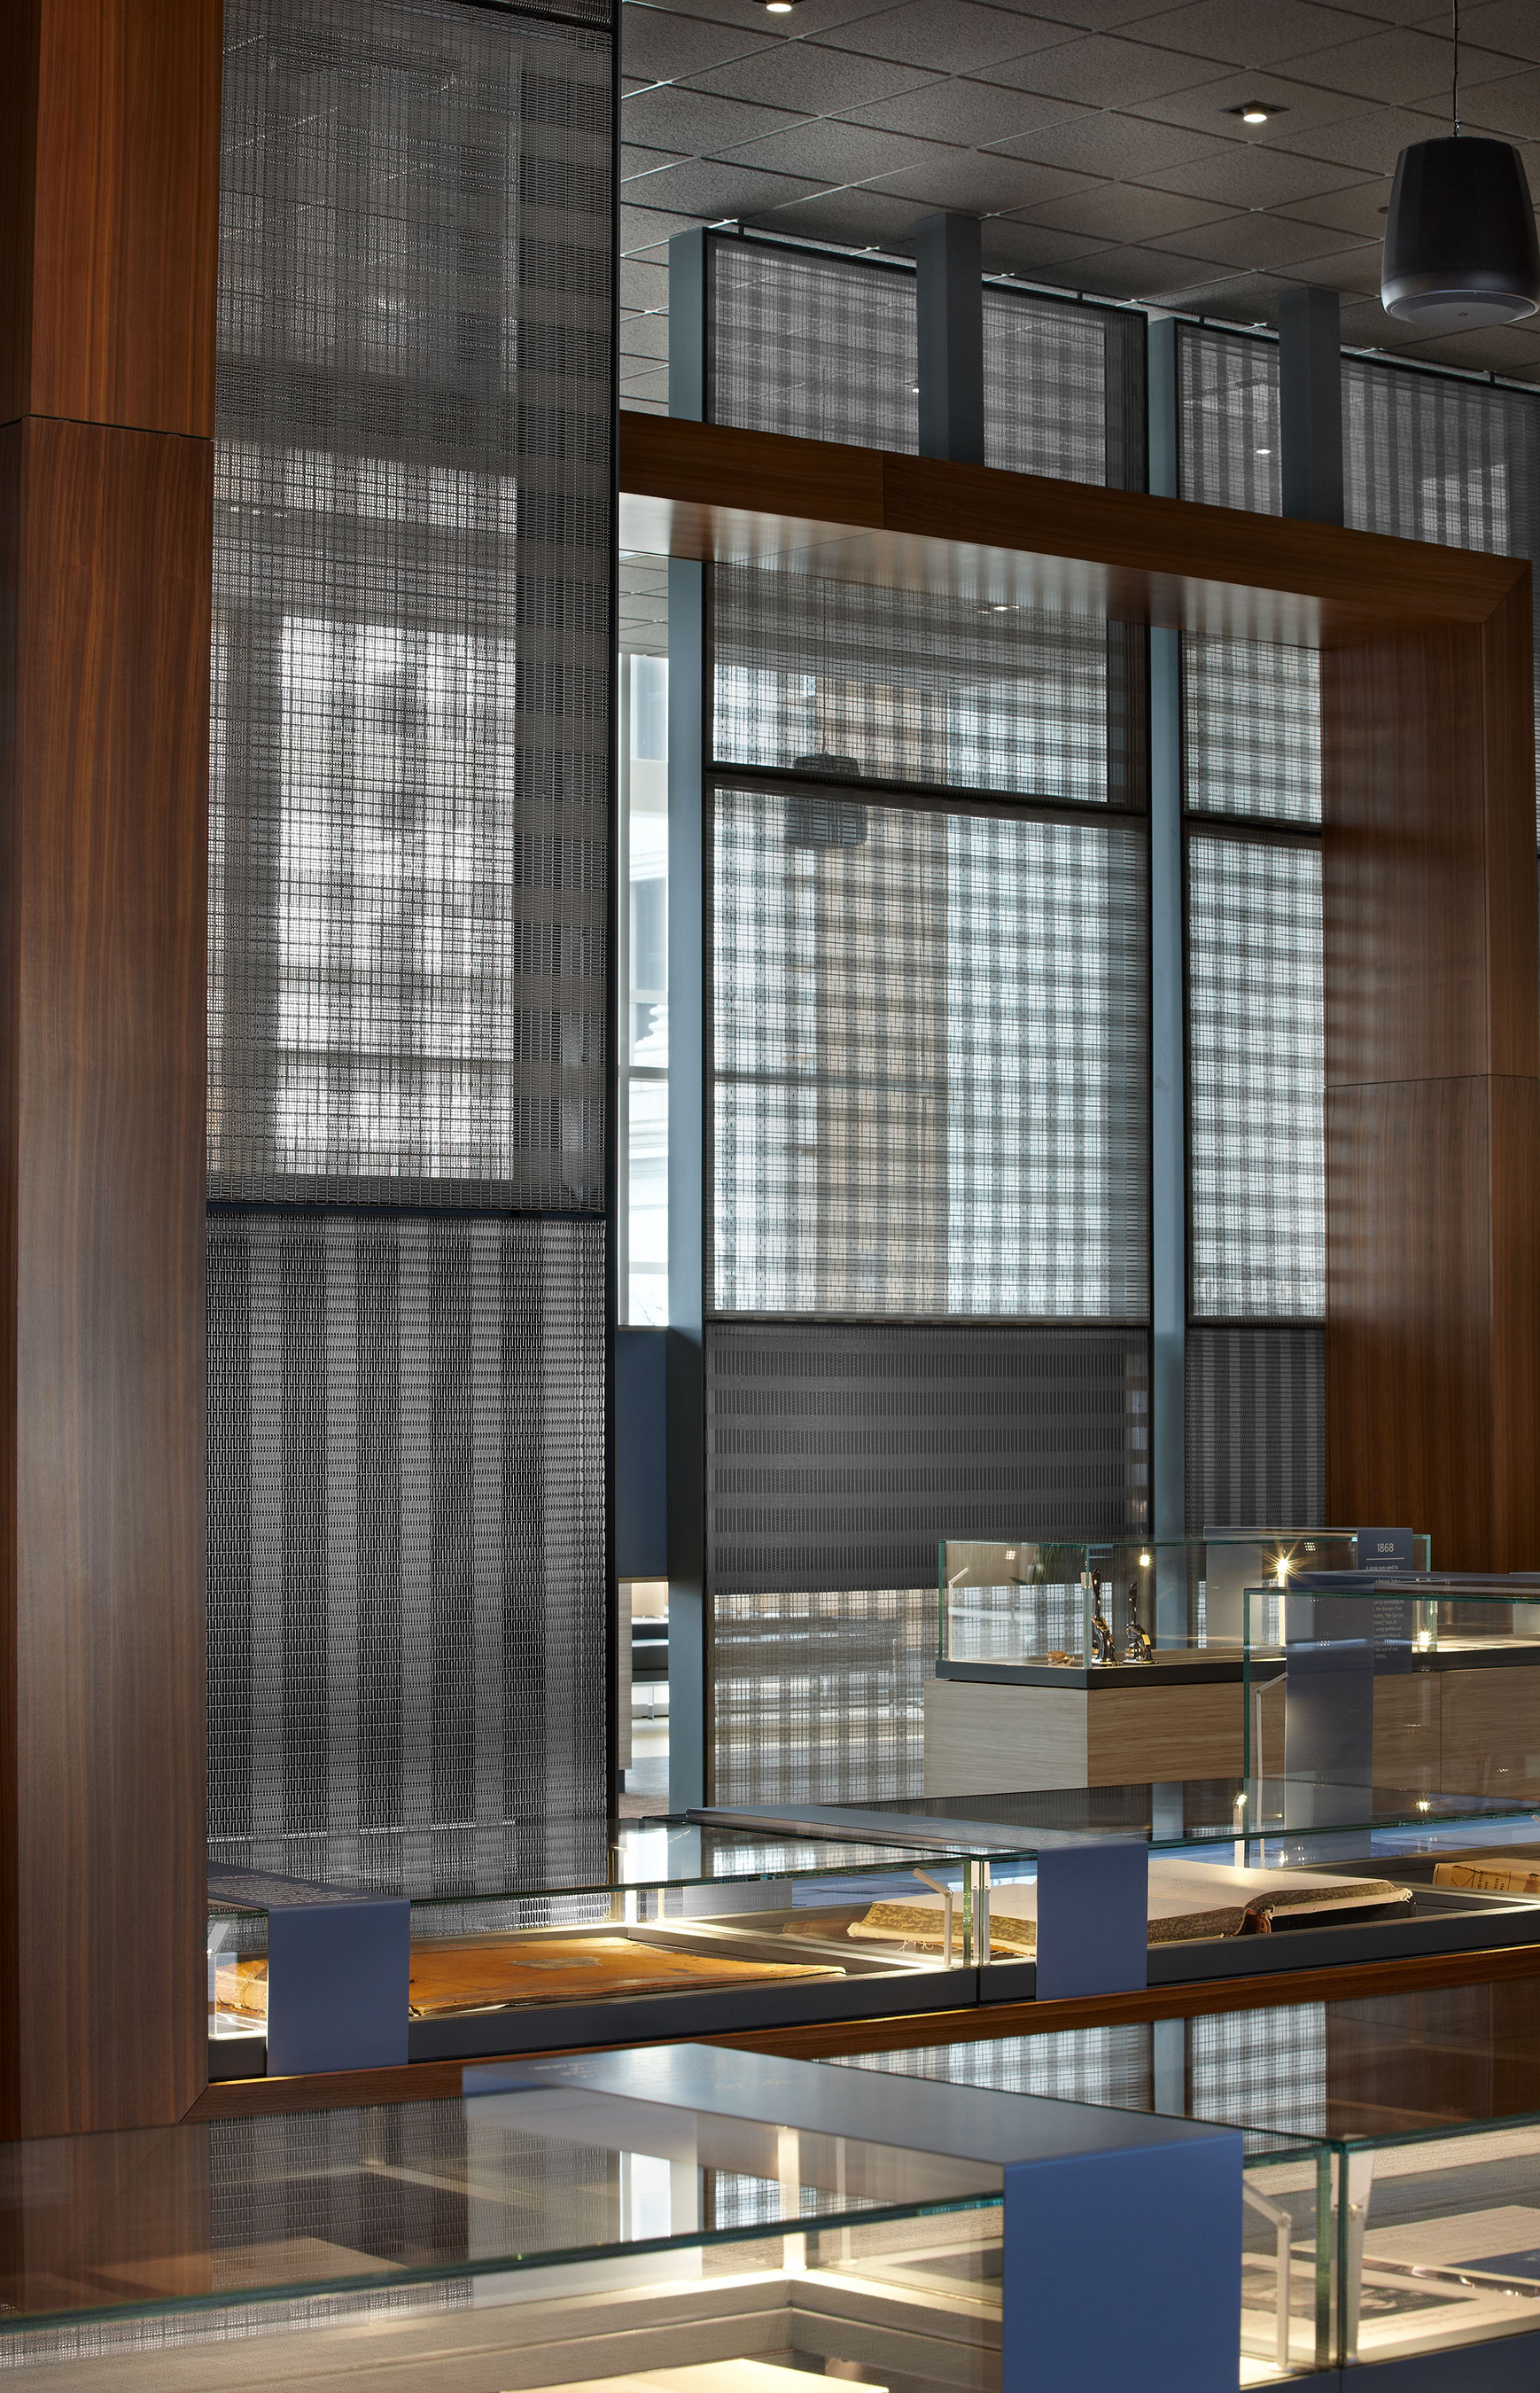 PFZ-53 stainless steel wire mesh emphasizes the designer's vision for a plaid-like pattern.